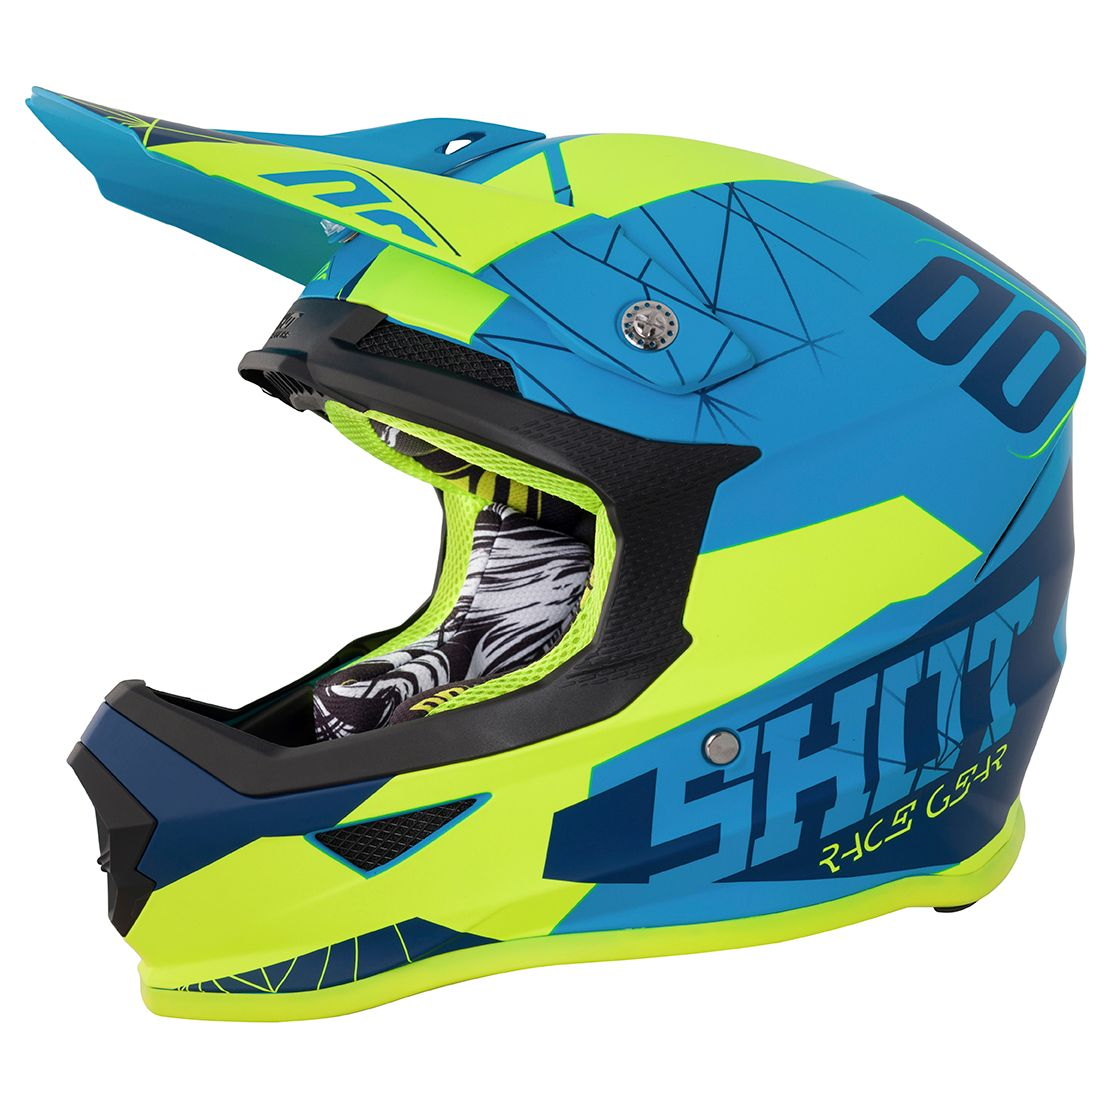 Casque cross Shot destockage FURIOUS SPECTRE - BLUE NEON YELLOW 2018